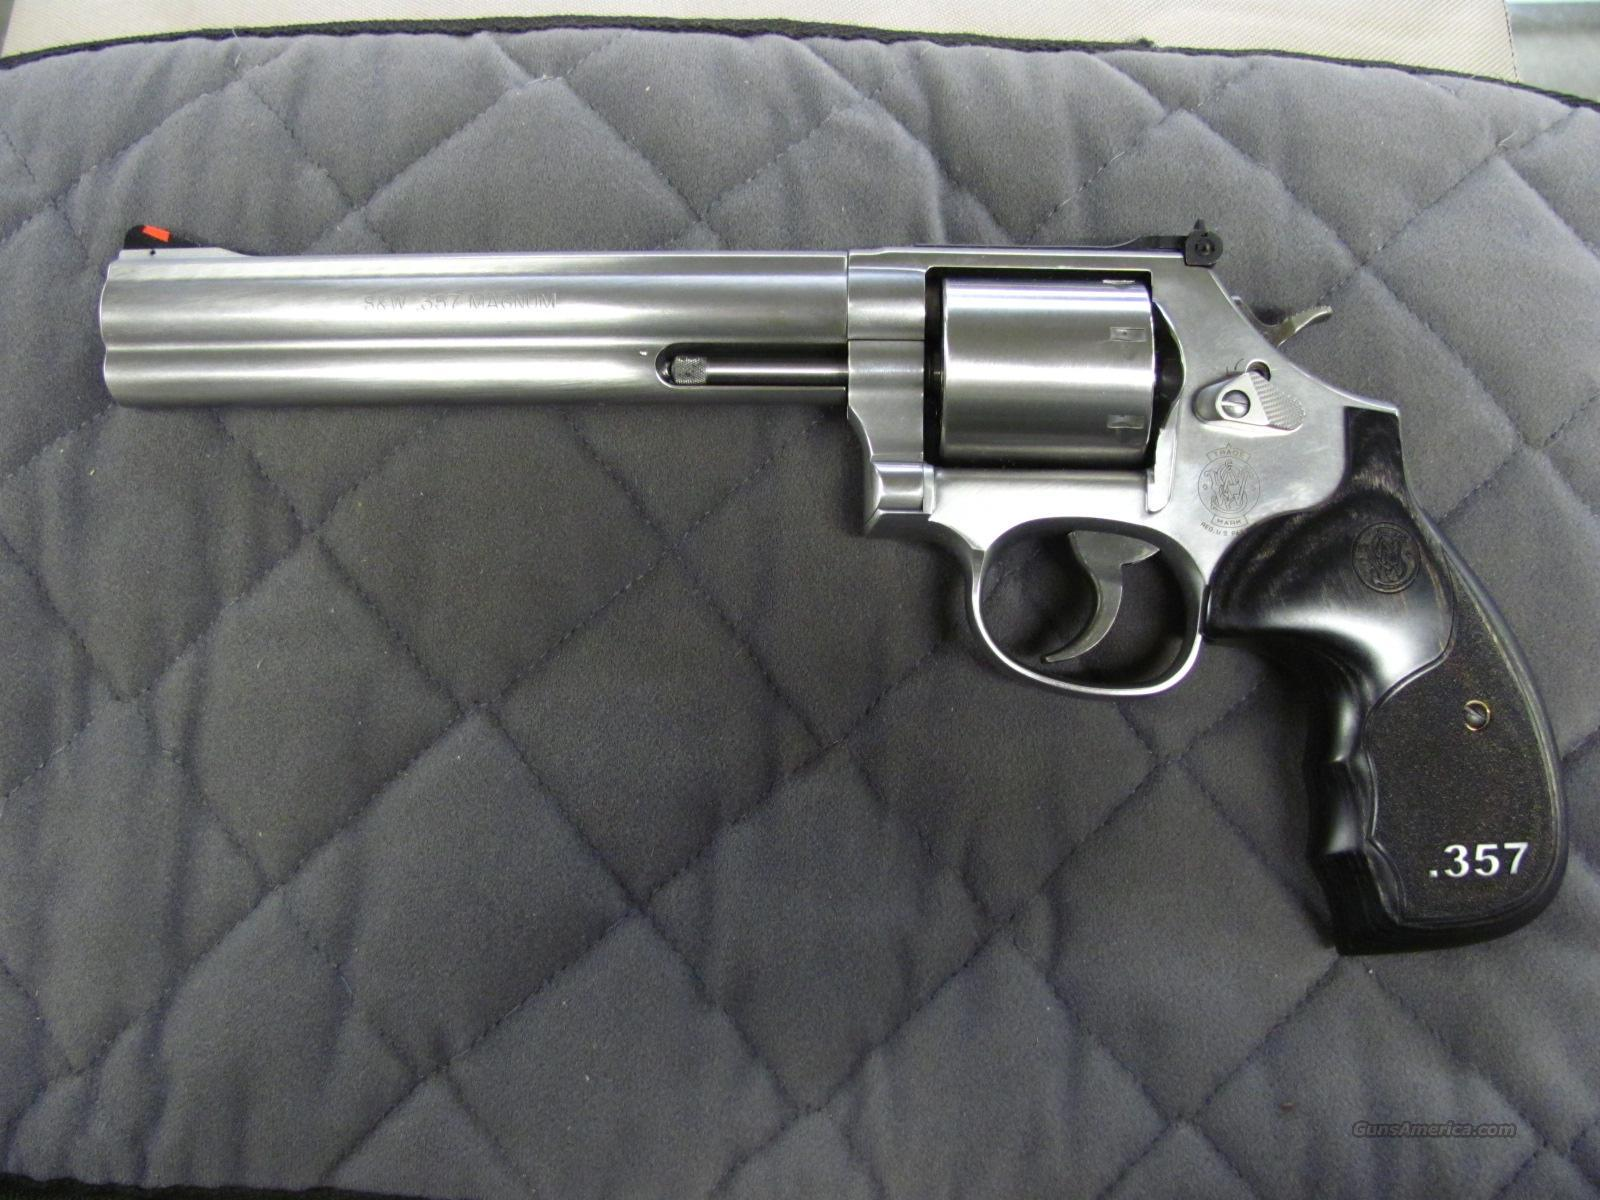 Smith & Wesson Model 686 Talo 3-5-7 Series 7 Inch 357 Mag  **NEW**  Guns > Pistols > Smith & Wesson Revolvers > Full Frame Revolver